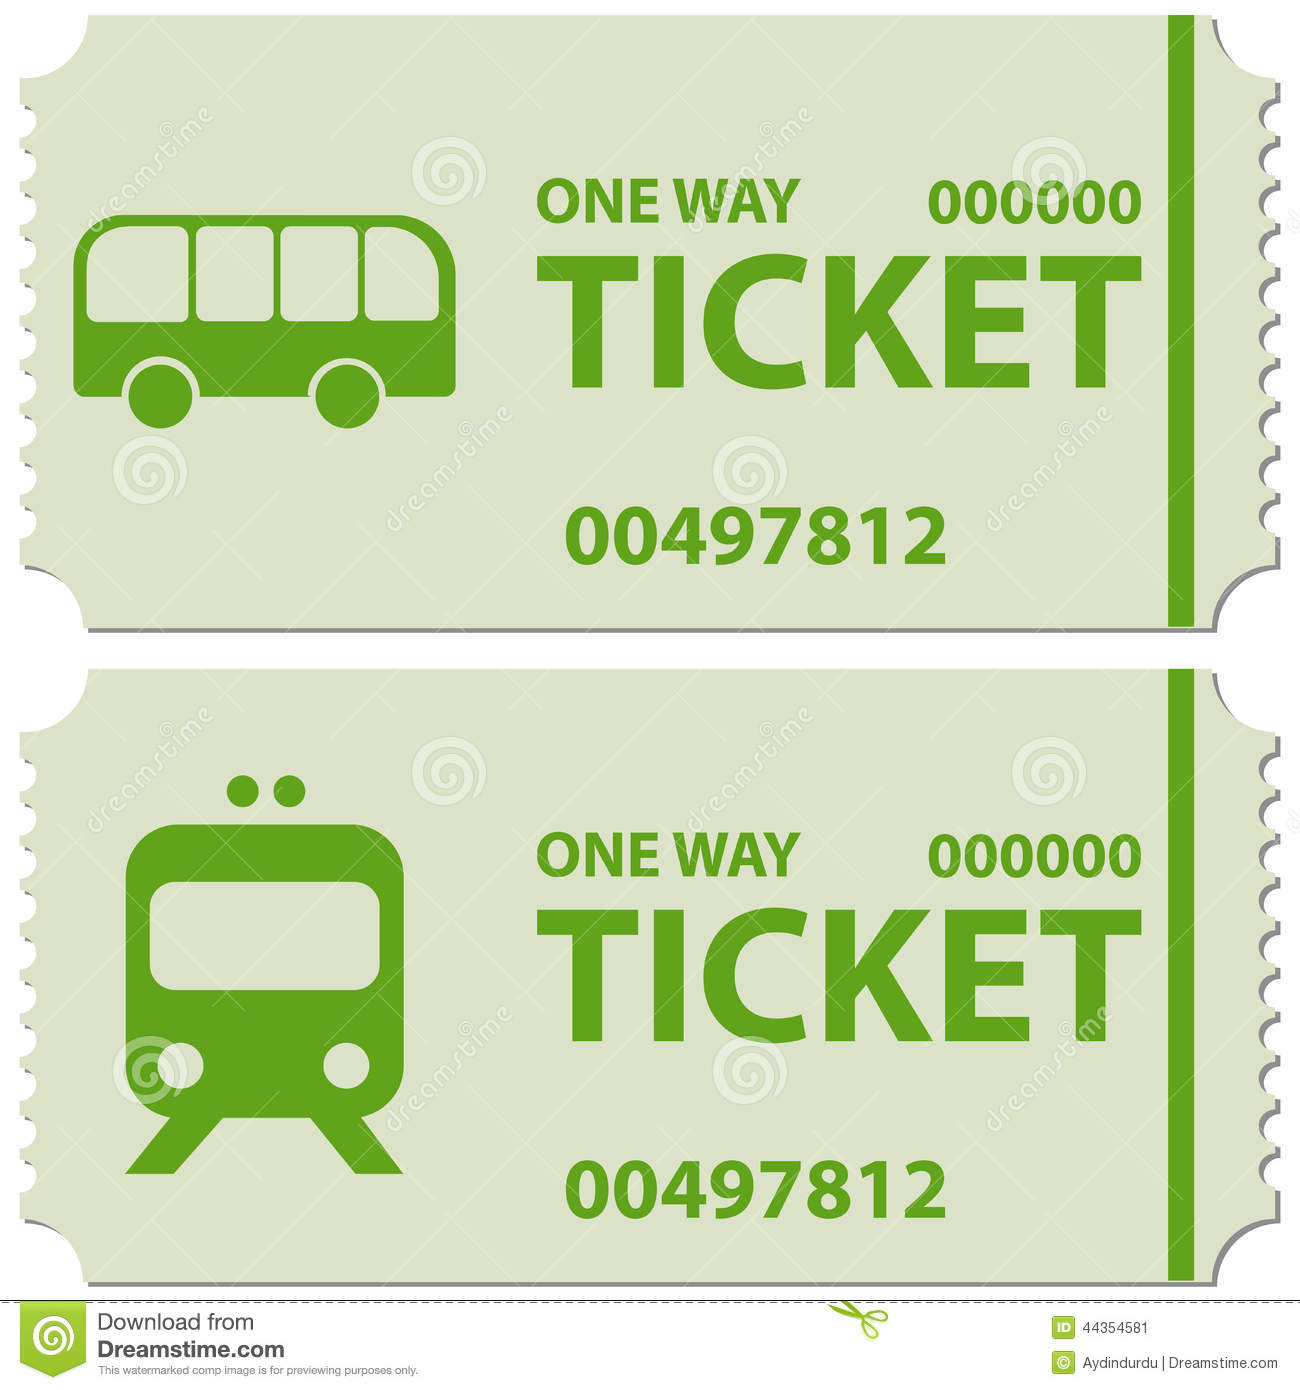 train ticket template word - bus and train tickets stock image image of railway green